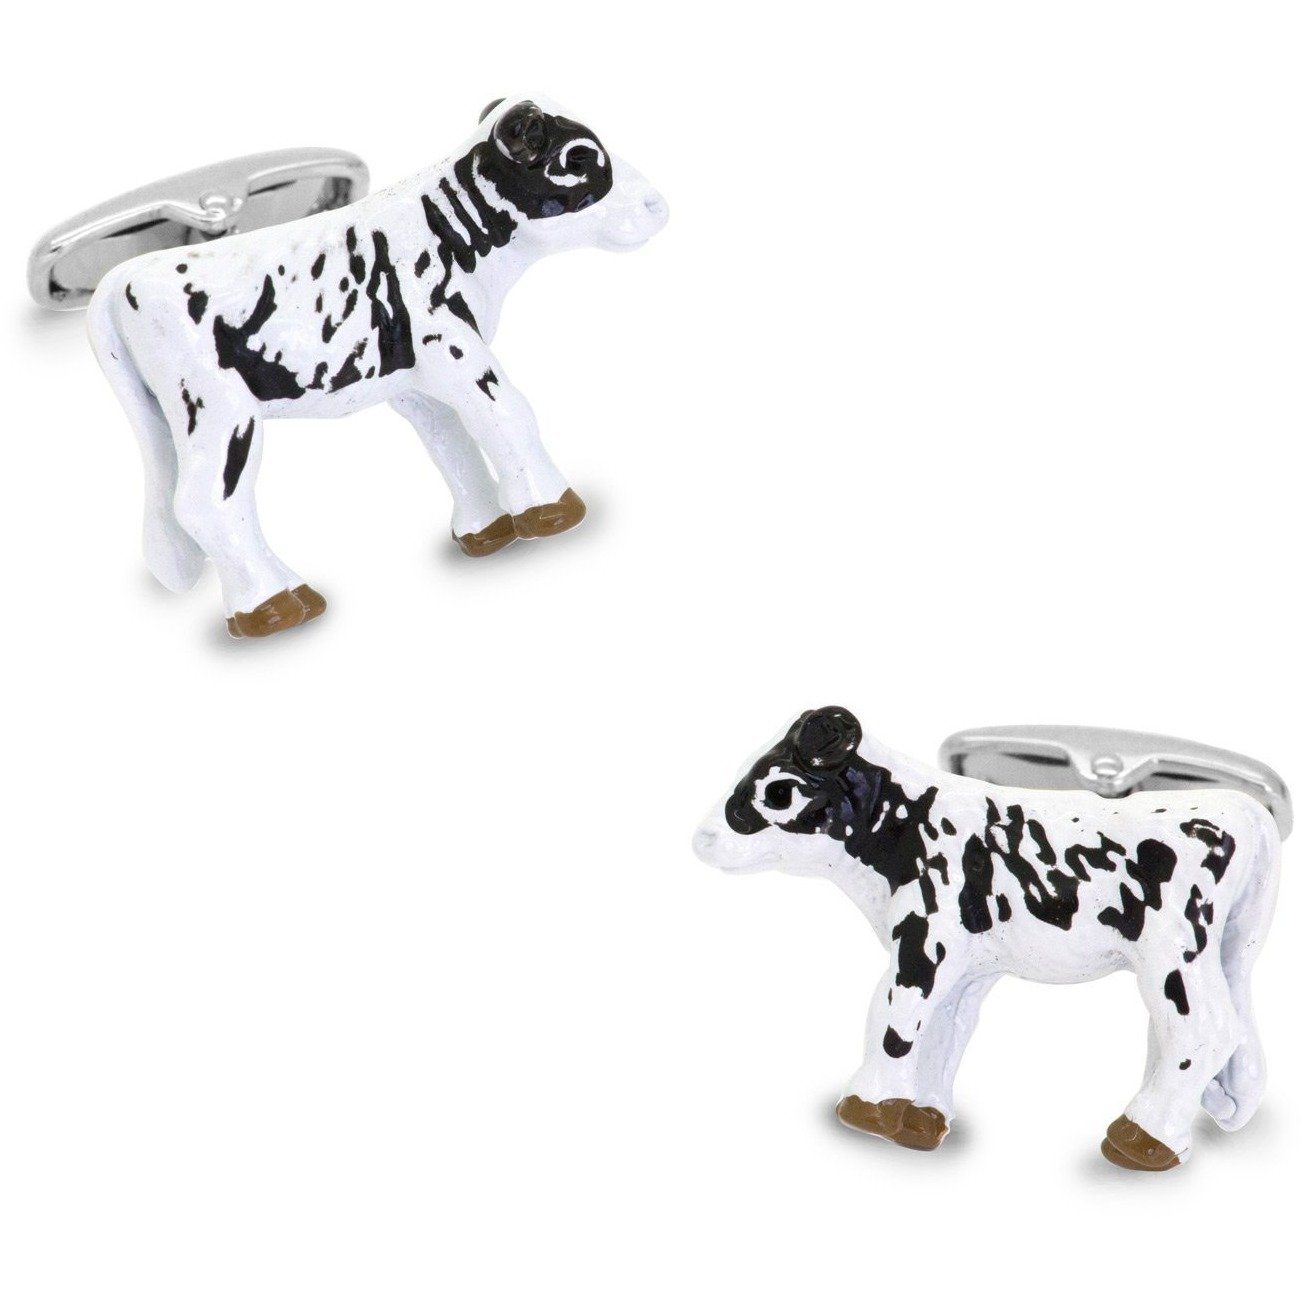 Black and White Cow Cufflinks 3D, Novelty Cufflinks, Cuffed.com.au, CL7080, $29.00